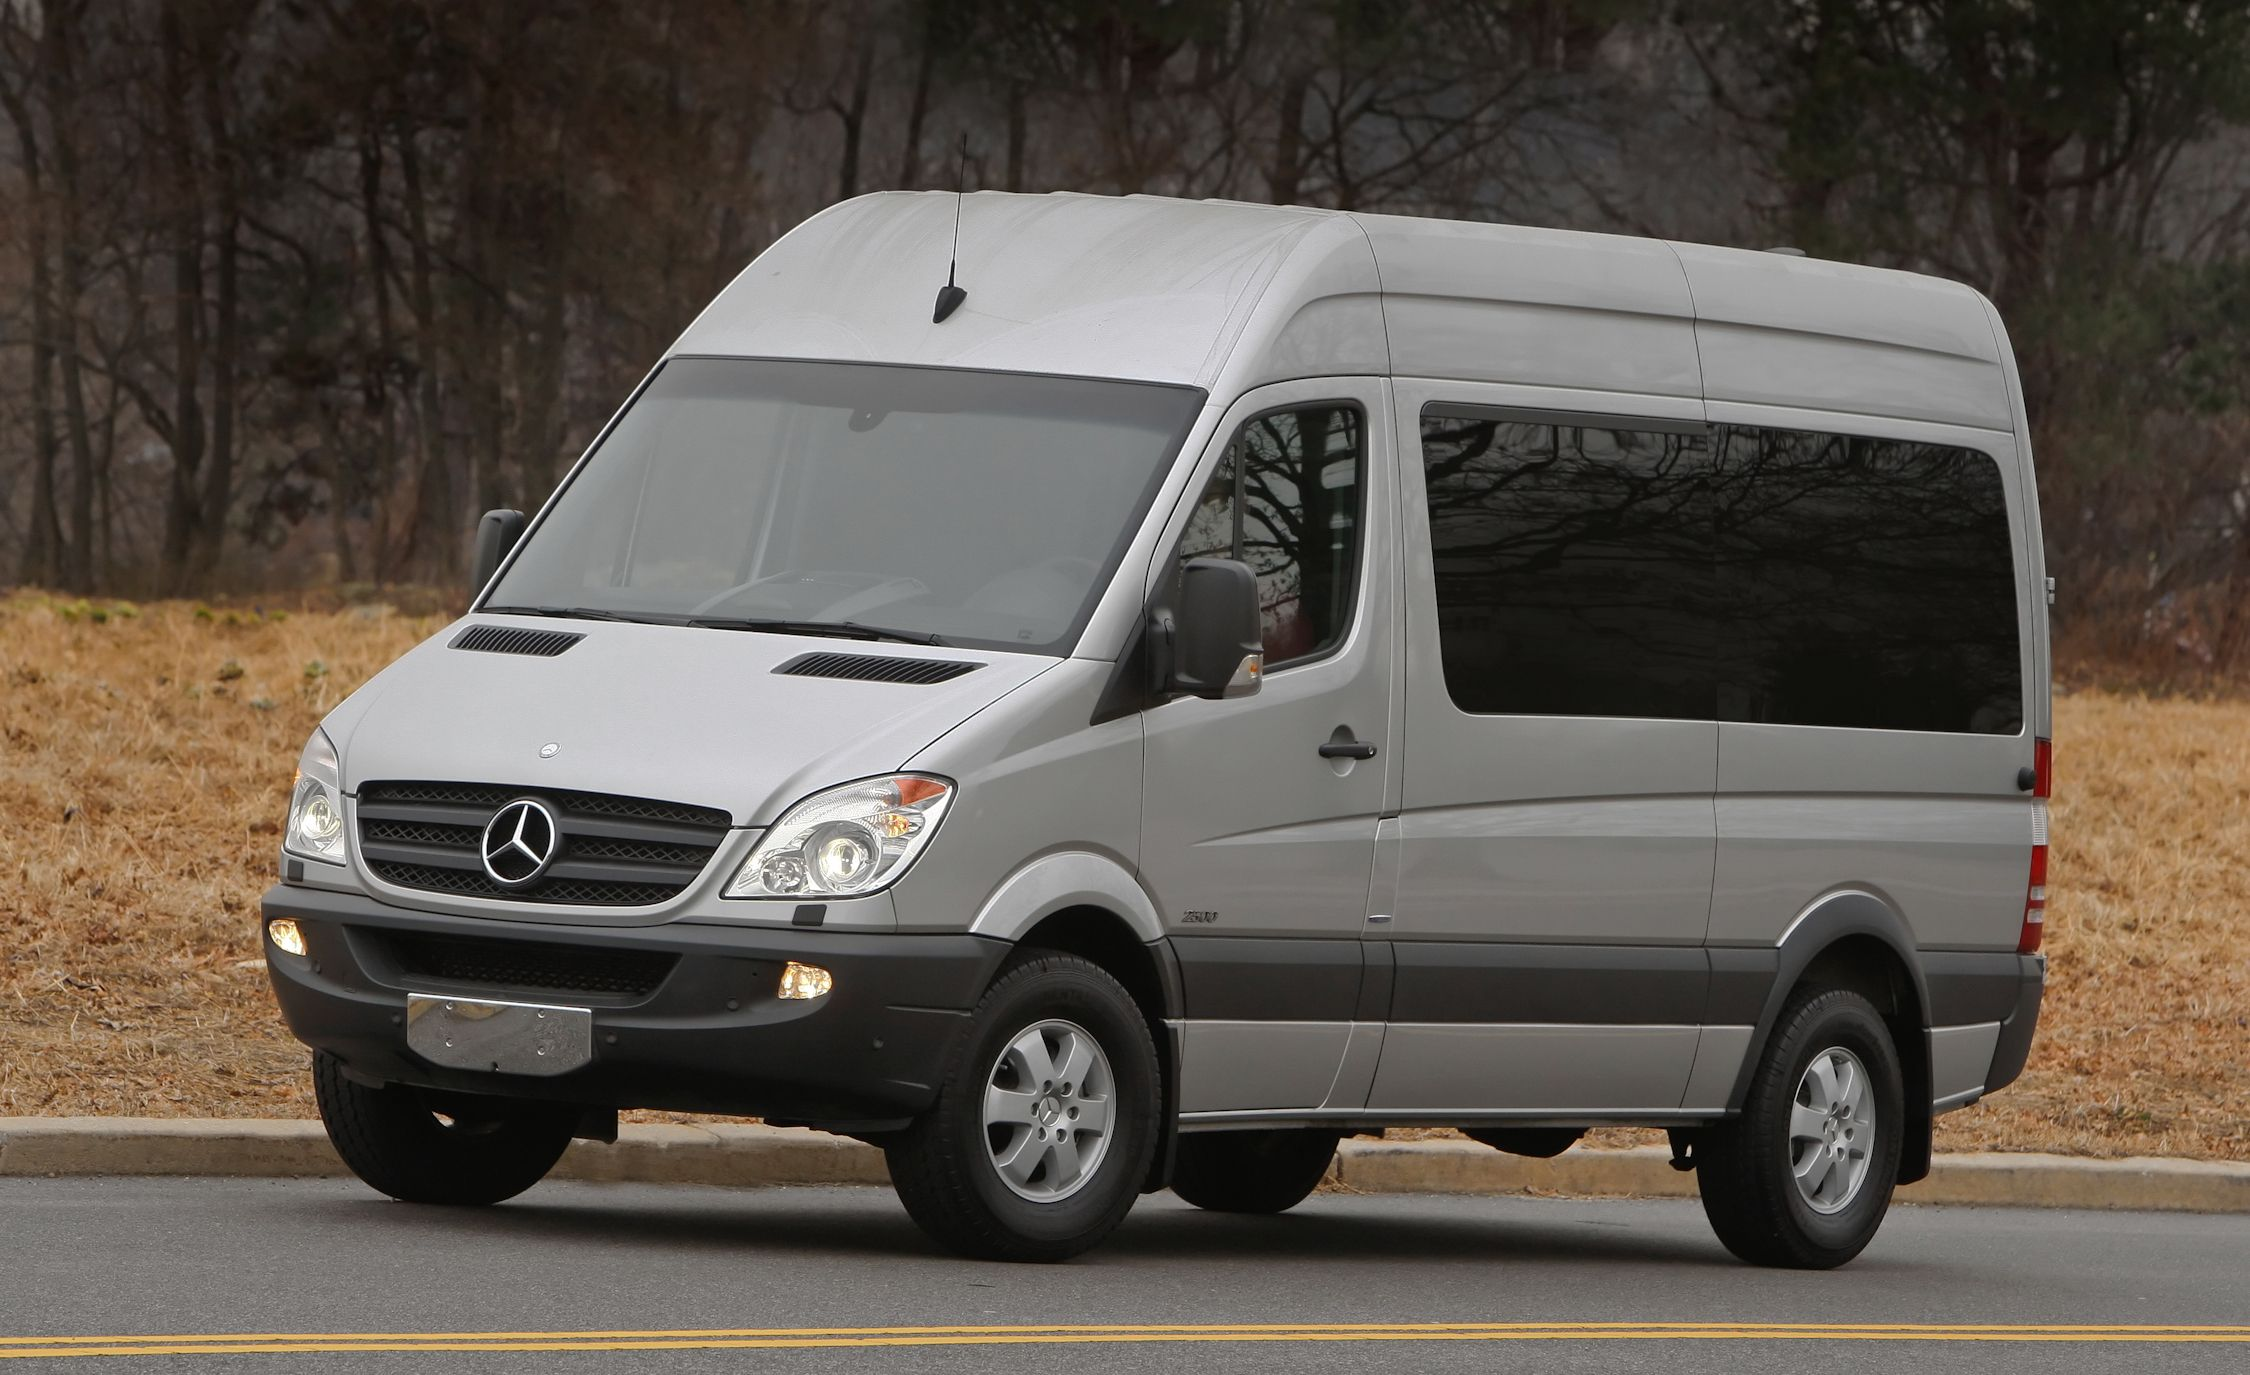 2010 Mercedes-Benz Sprinter Test &ndash